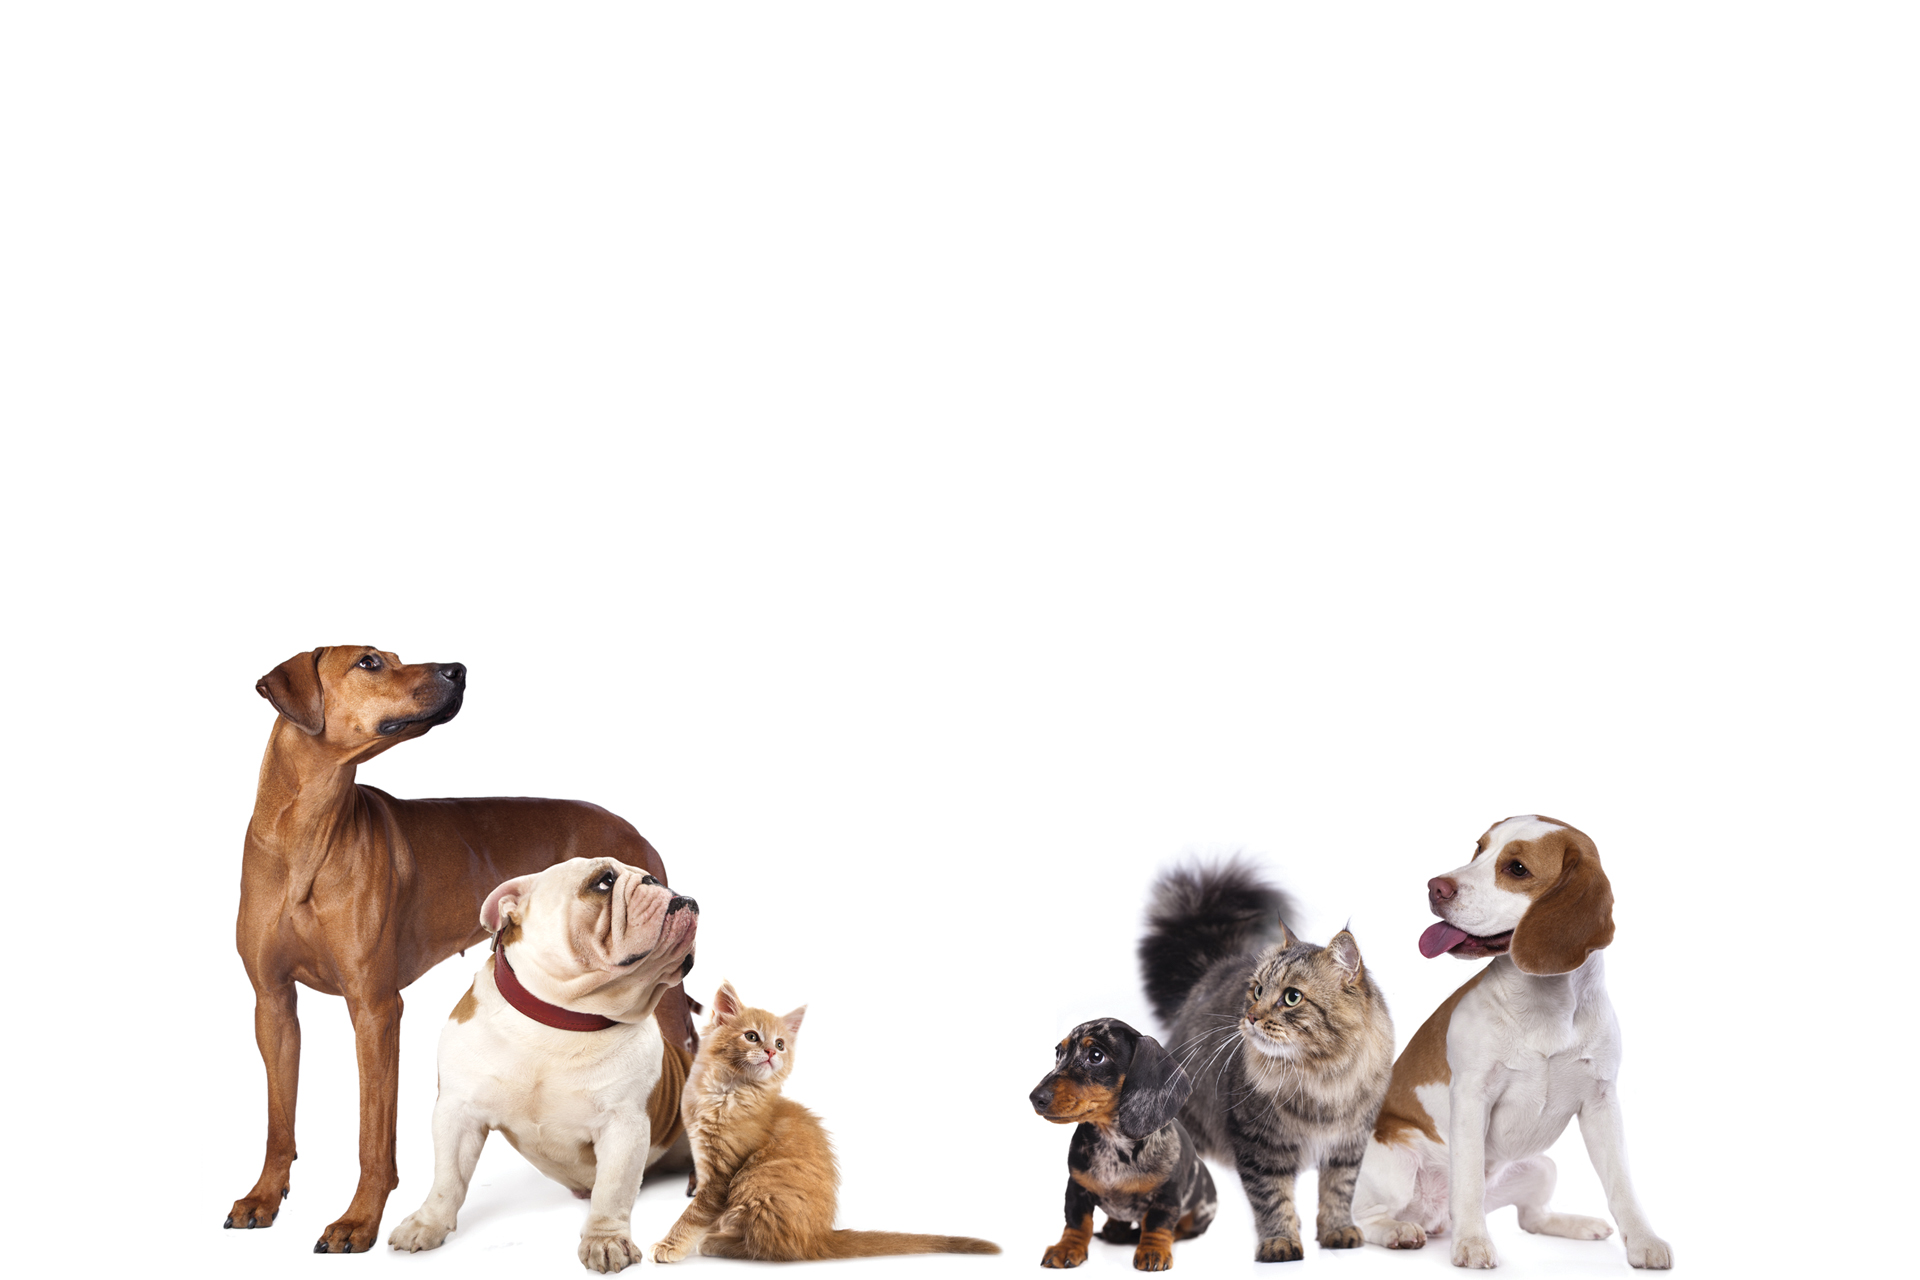 Animal shelters and rescues need great animal shelter fundraising ideas. Shoe drive fundraisers can help!